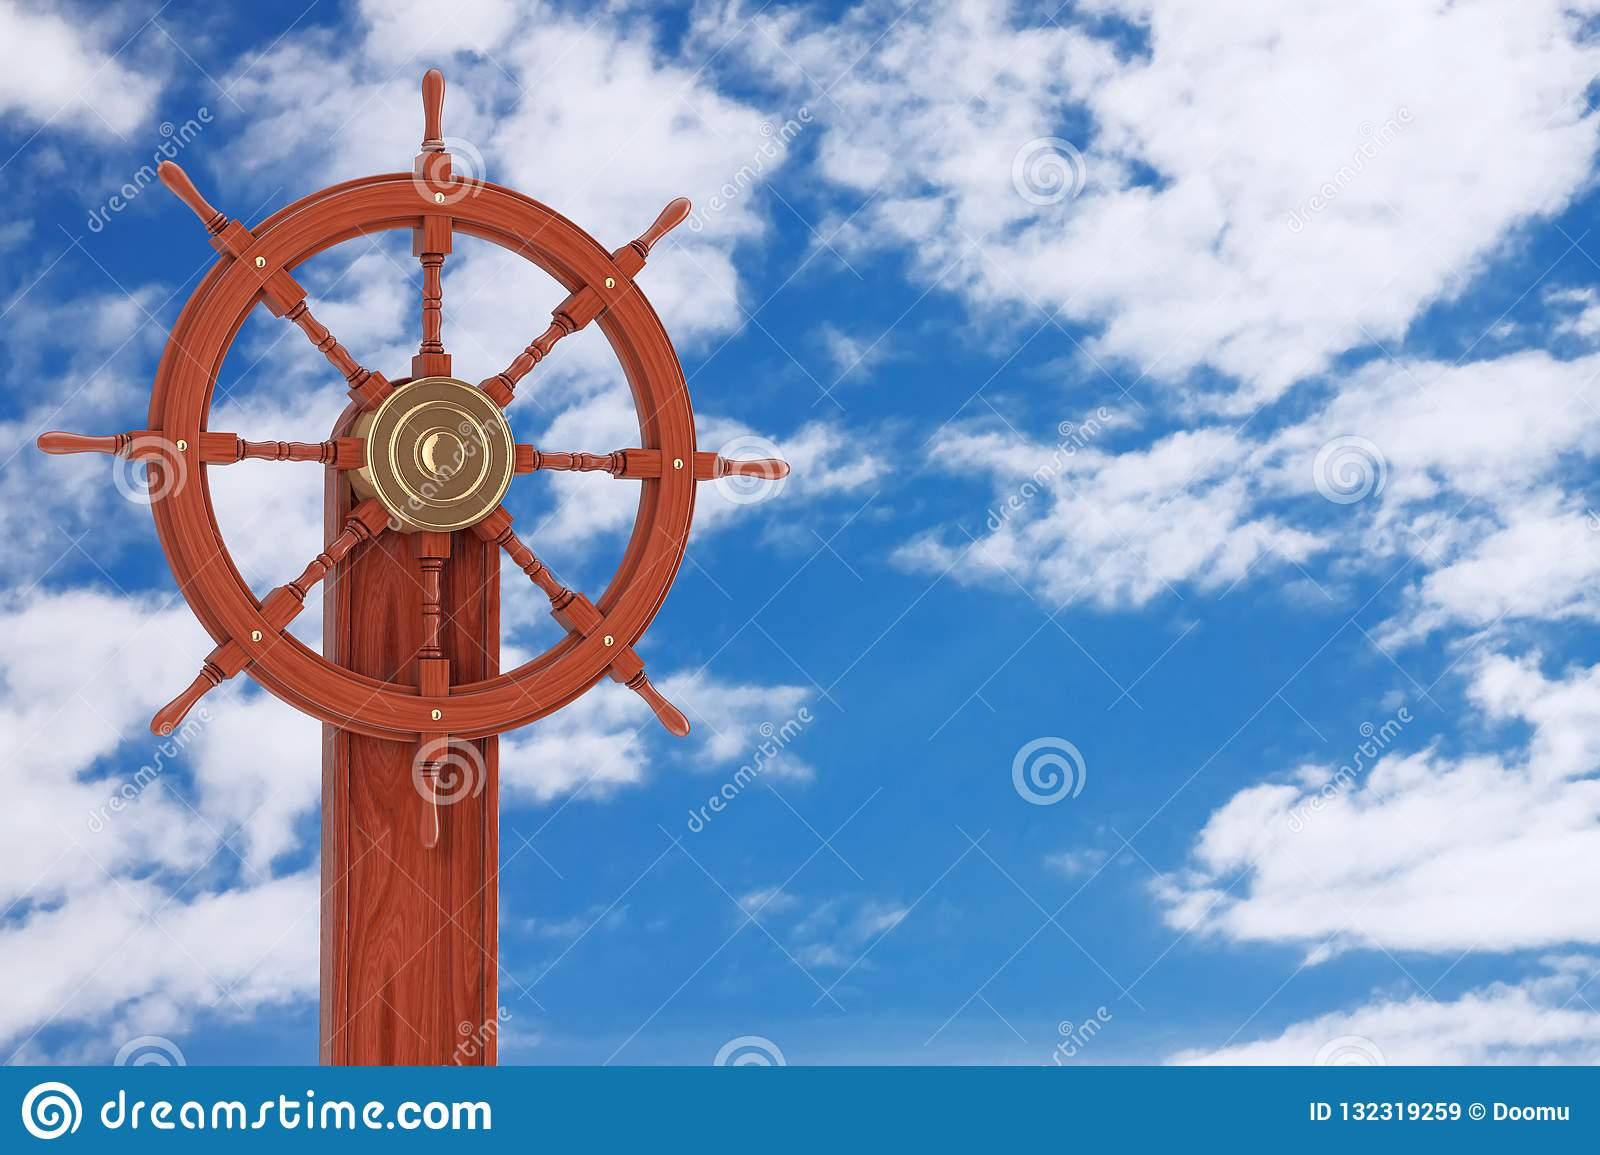 Vintage Wooden Ship Steering Wheel With Stand 3d Rendering Stock Illustration Illustration Of Sailboat Nautical 132319259